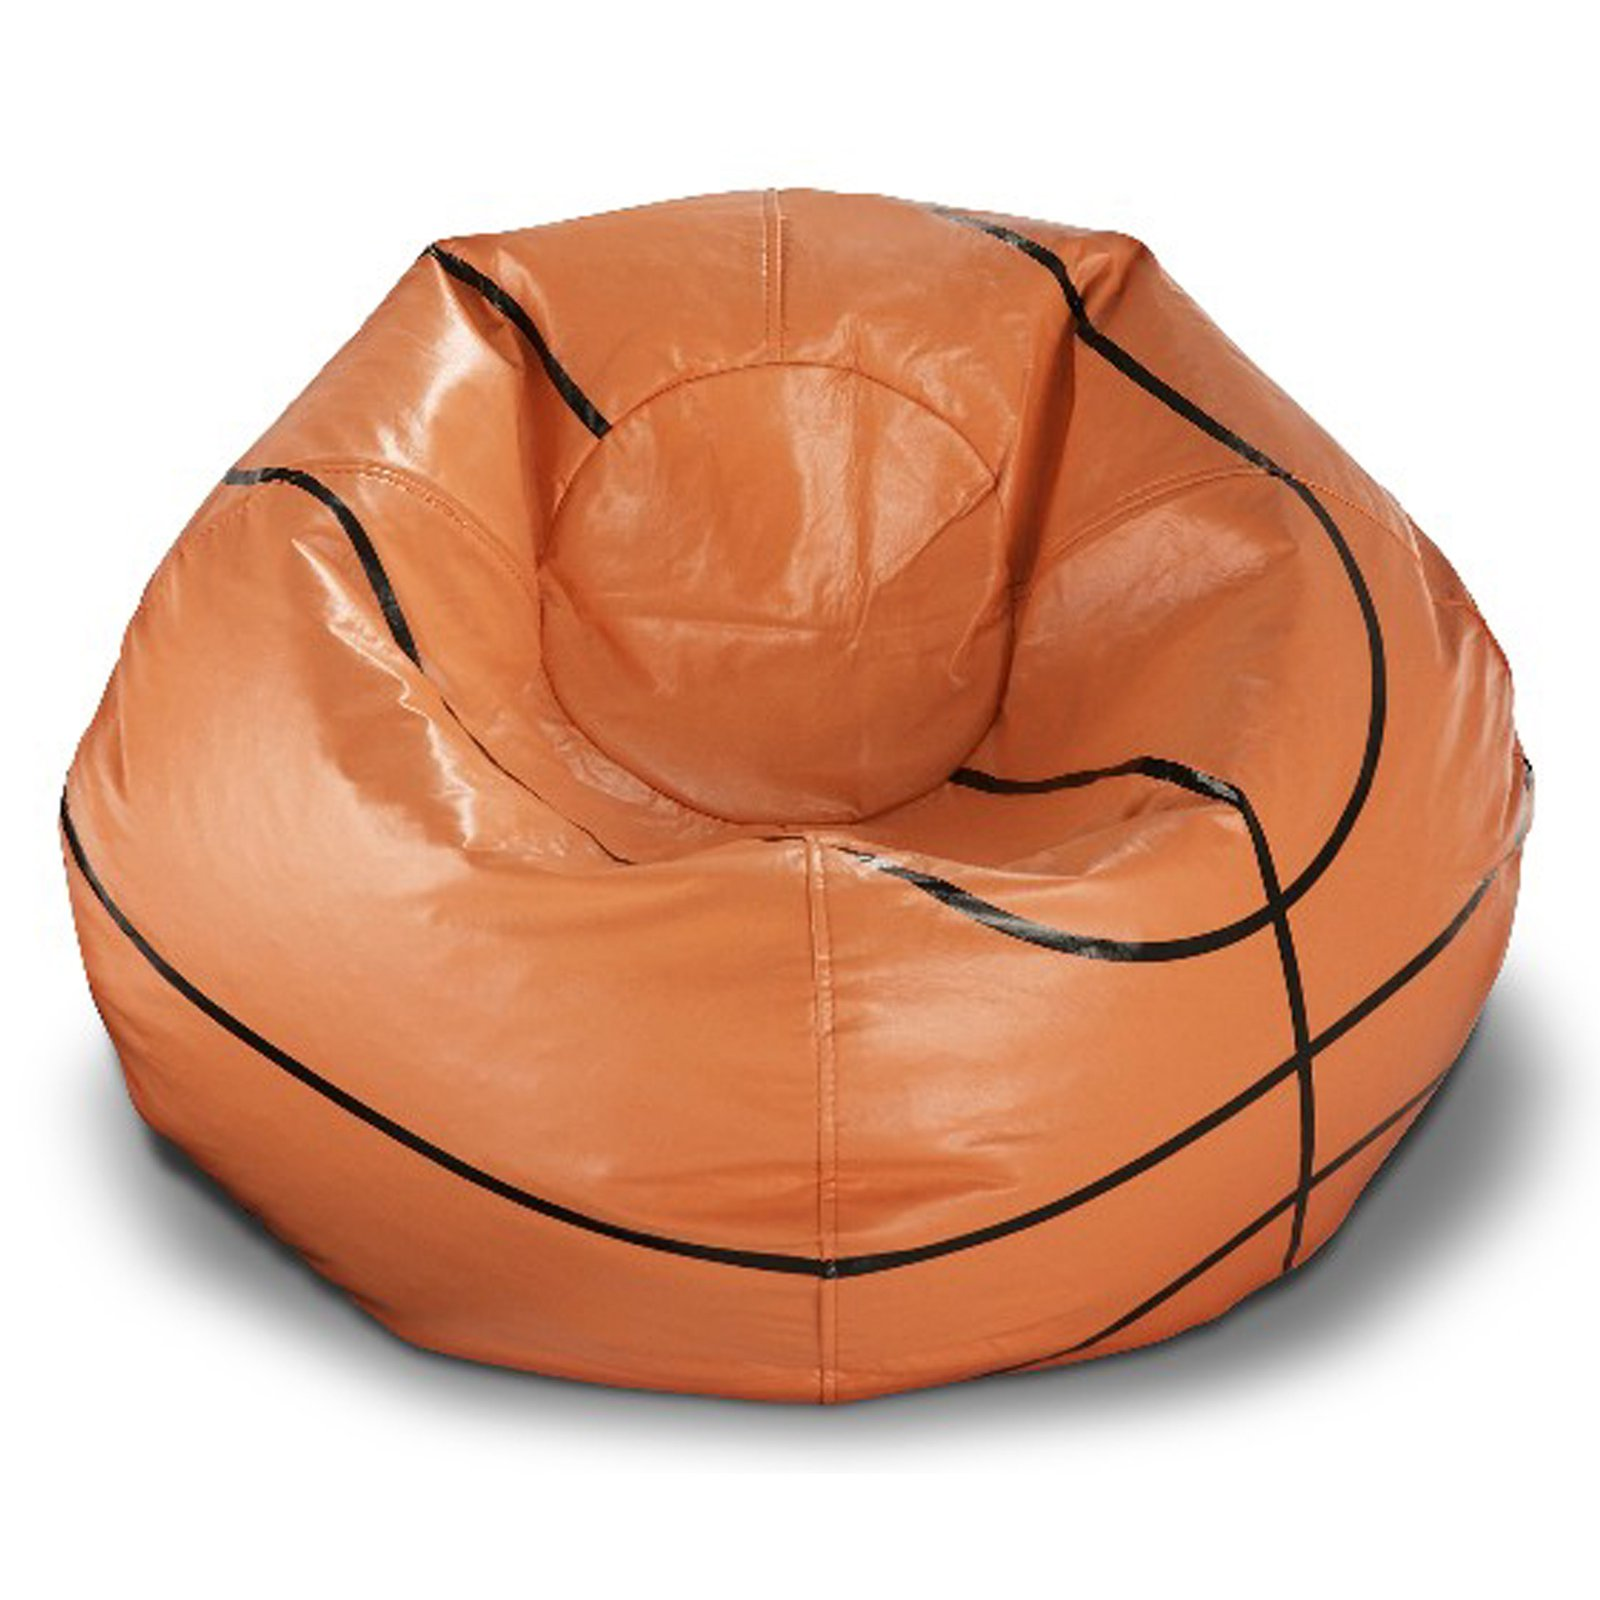 Basketball Bean Bag Chair X Rocker 96